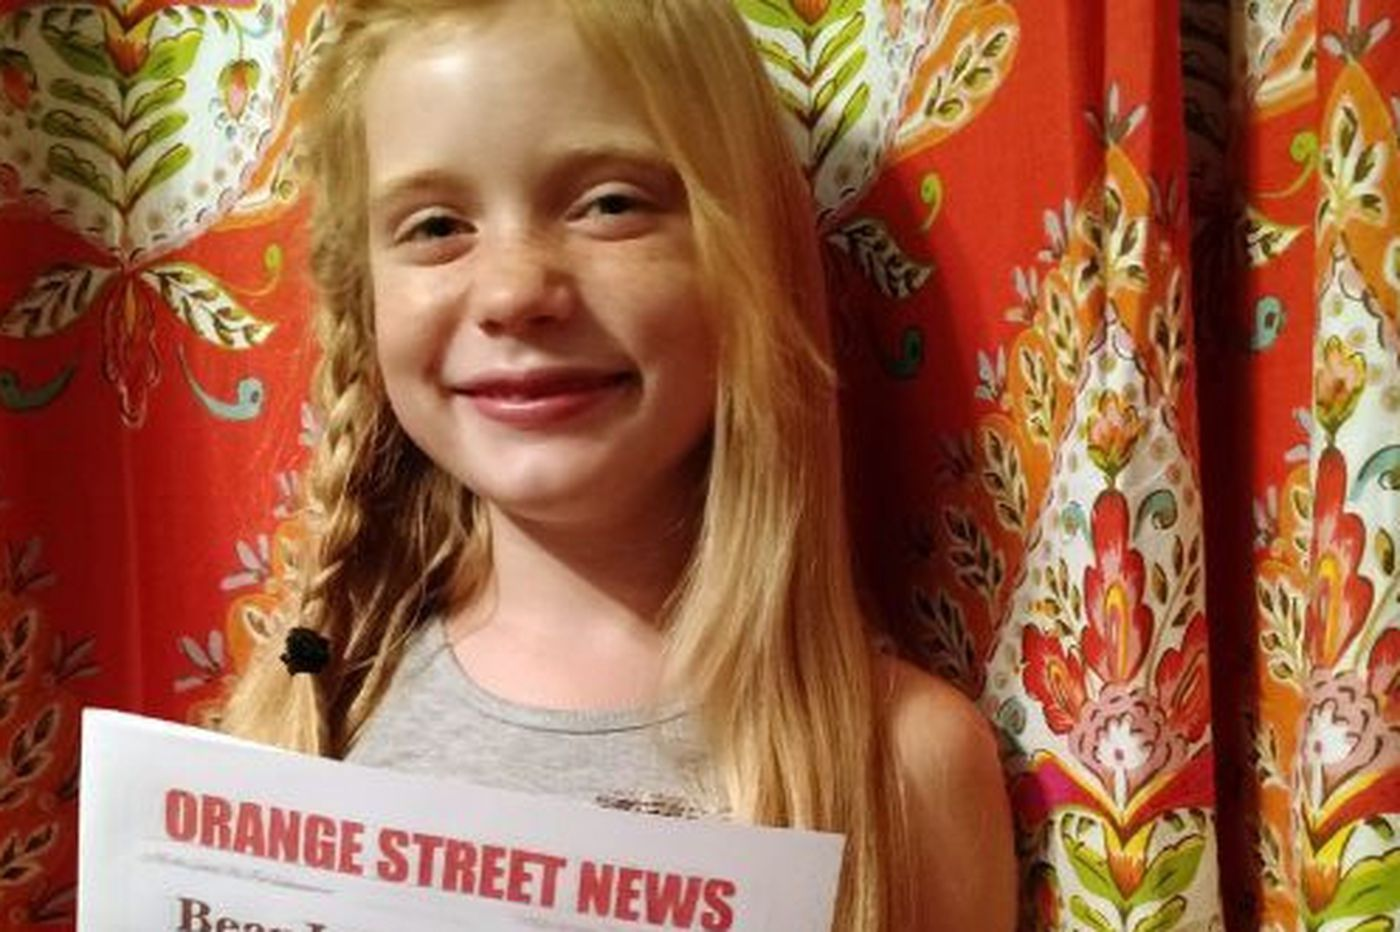 Ariz. marshal faces backlash over dustup with kid reporter from Pa.